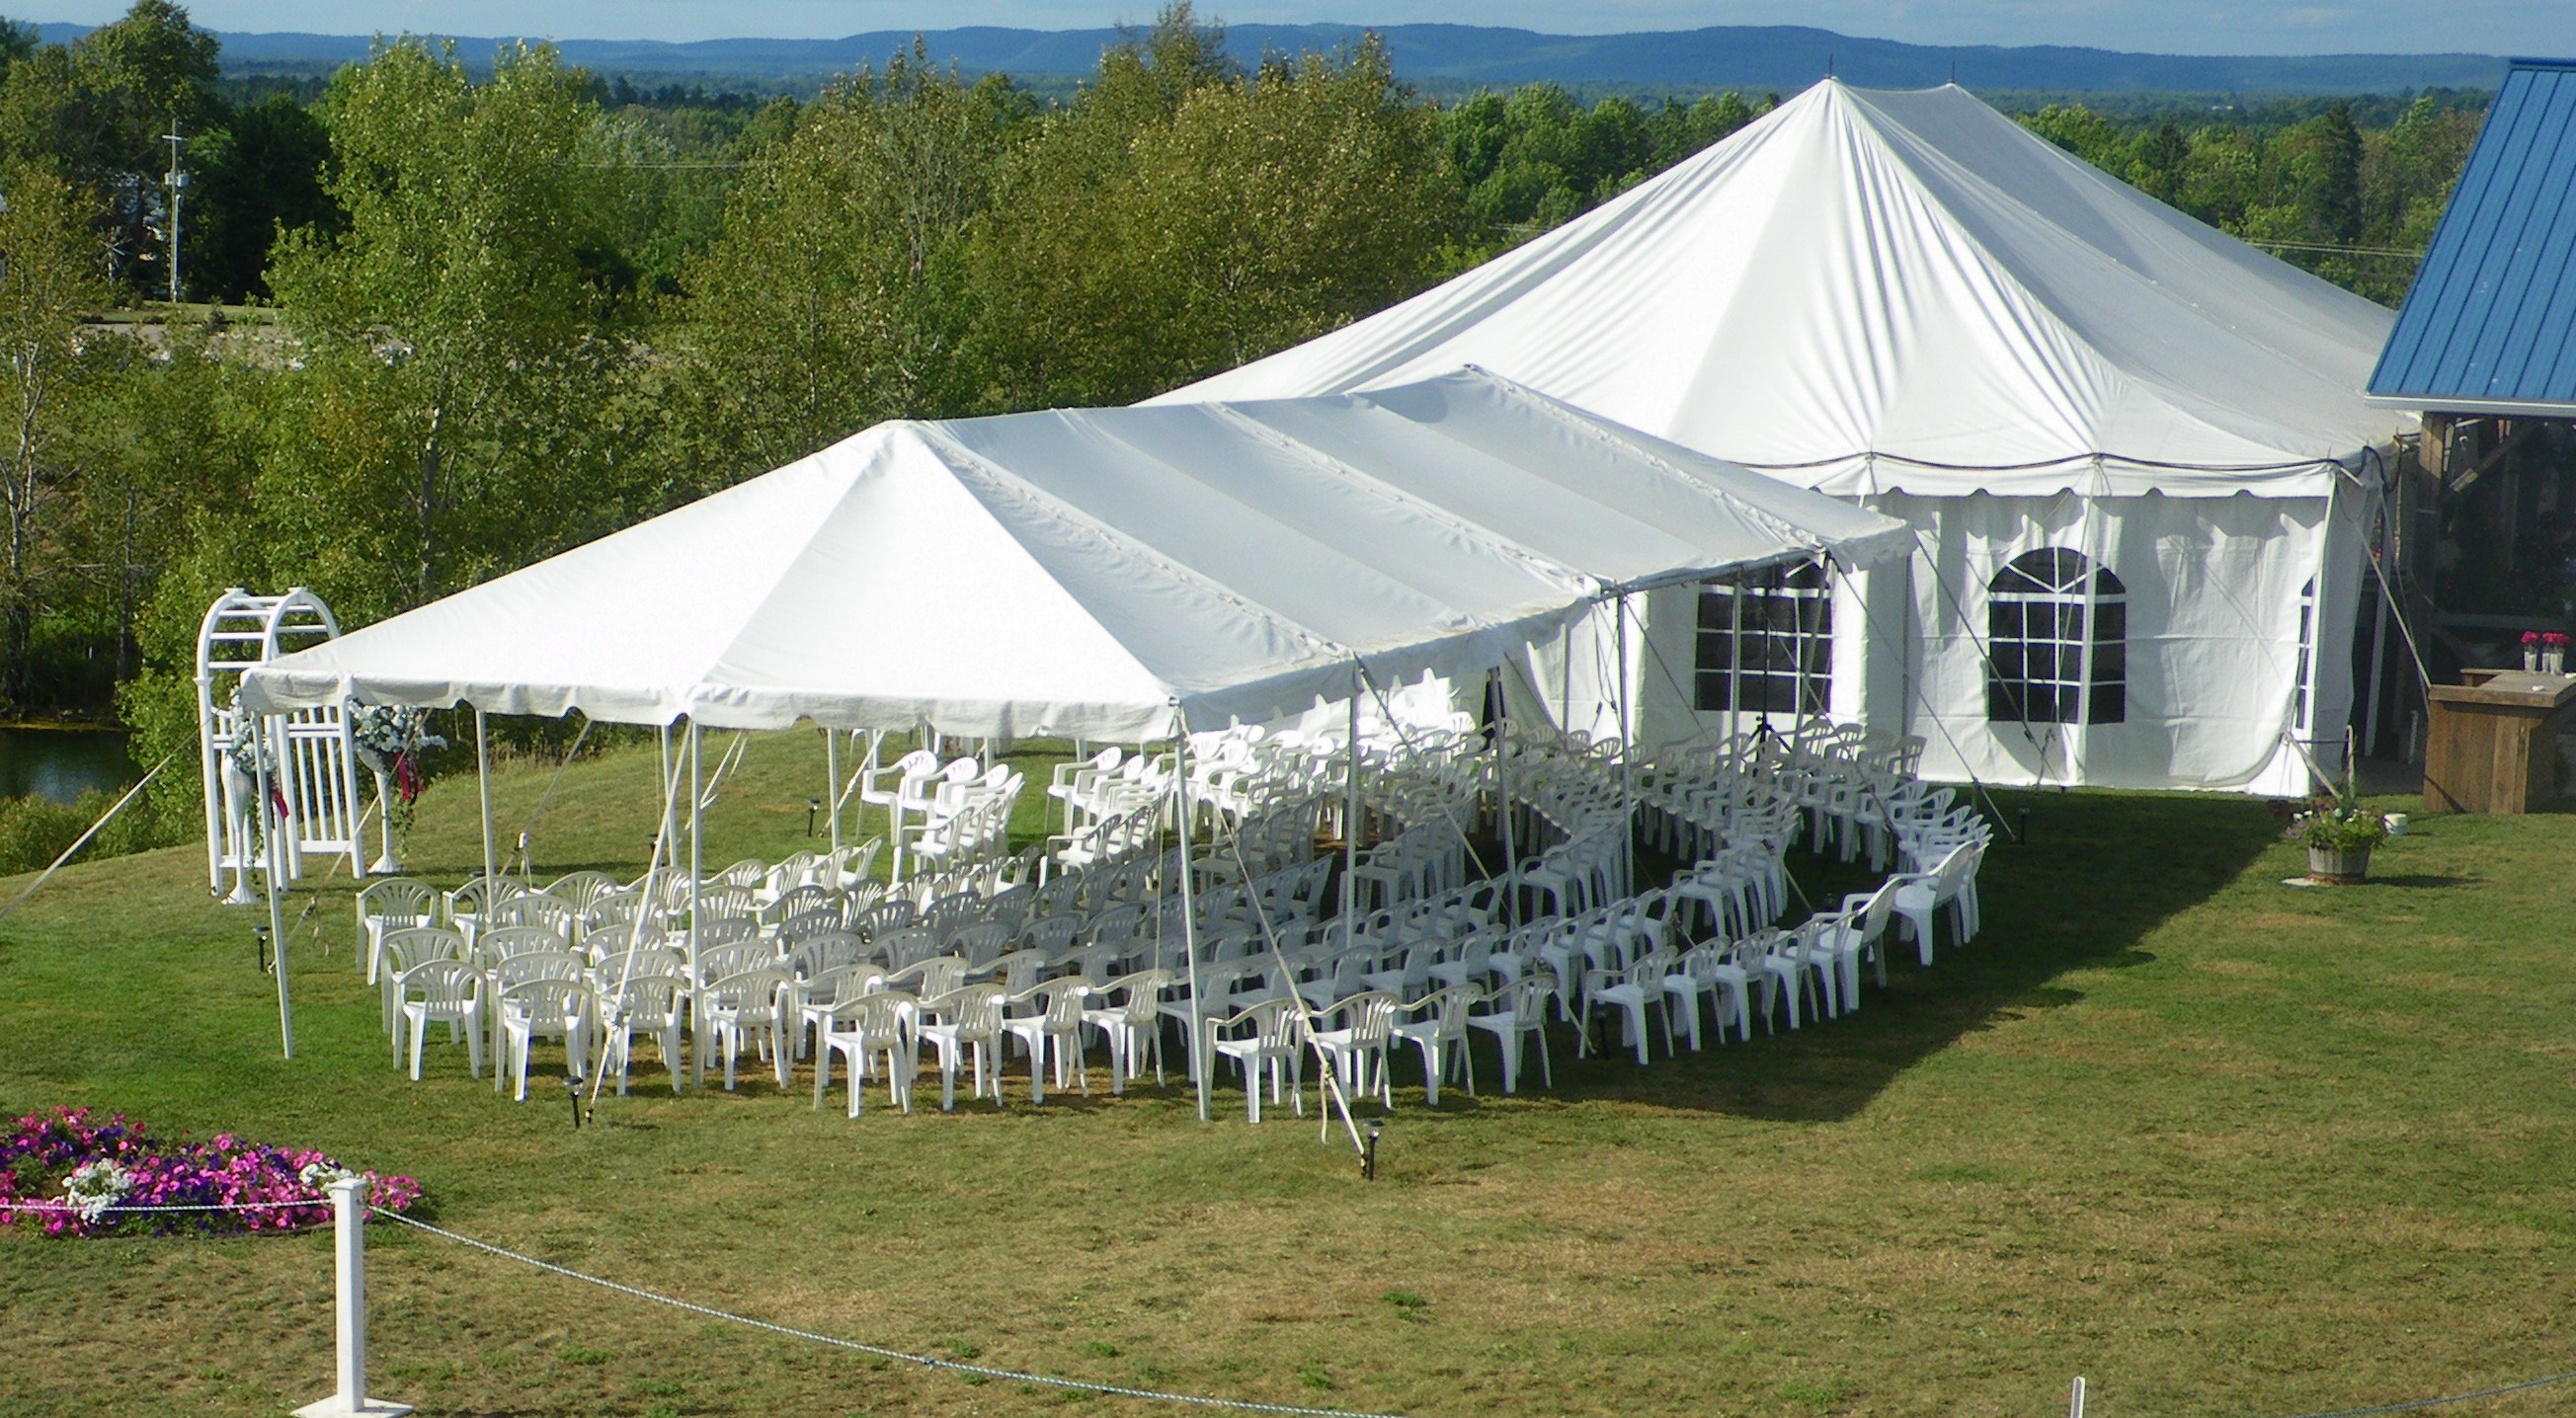 Hugli's has beautiful, white garden tents with clear windows for on-site weddings at Hugli's Blueberry Ranch in Pembroke.